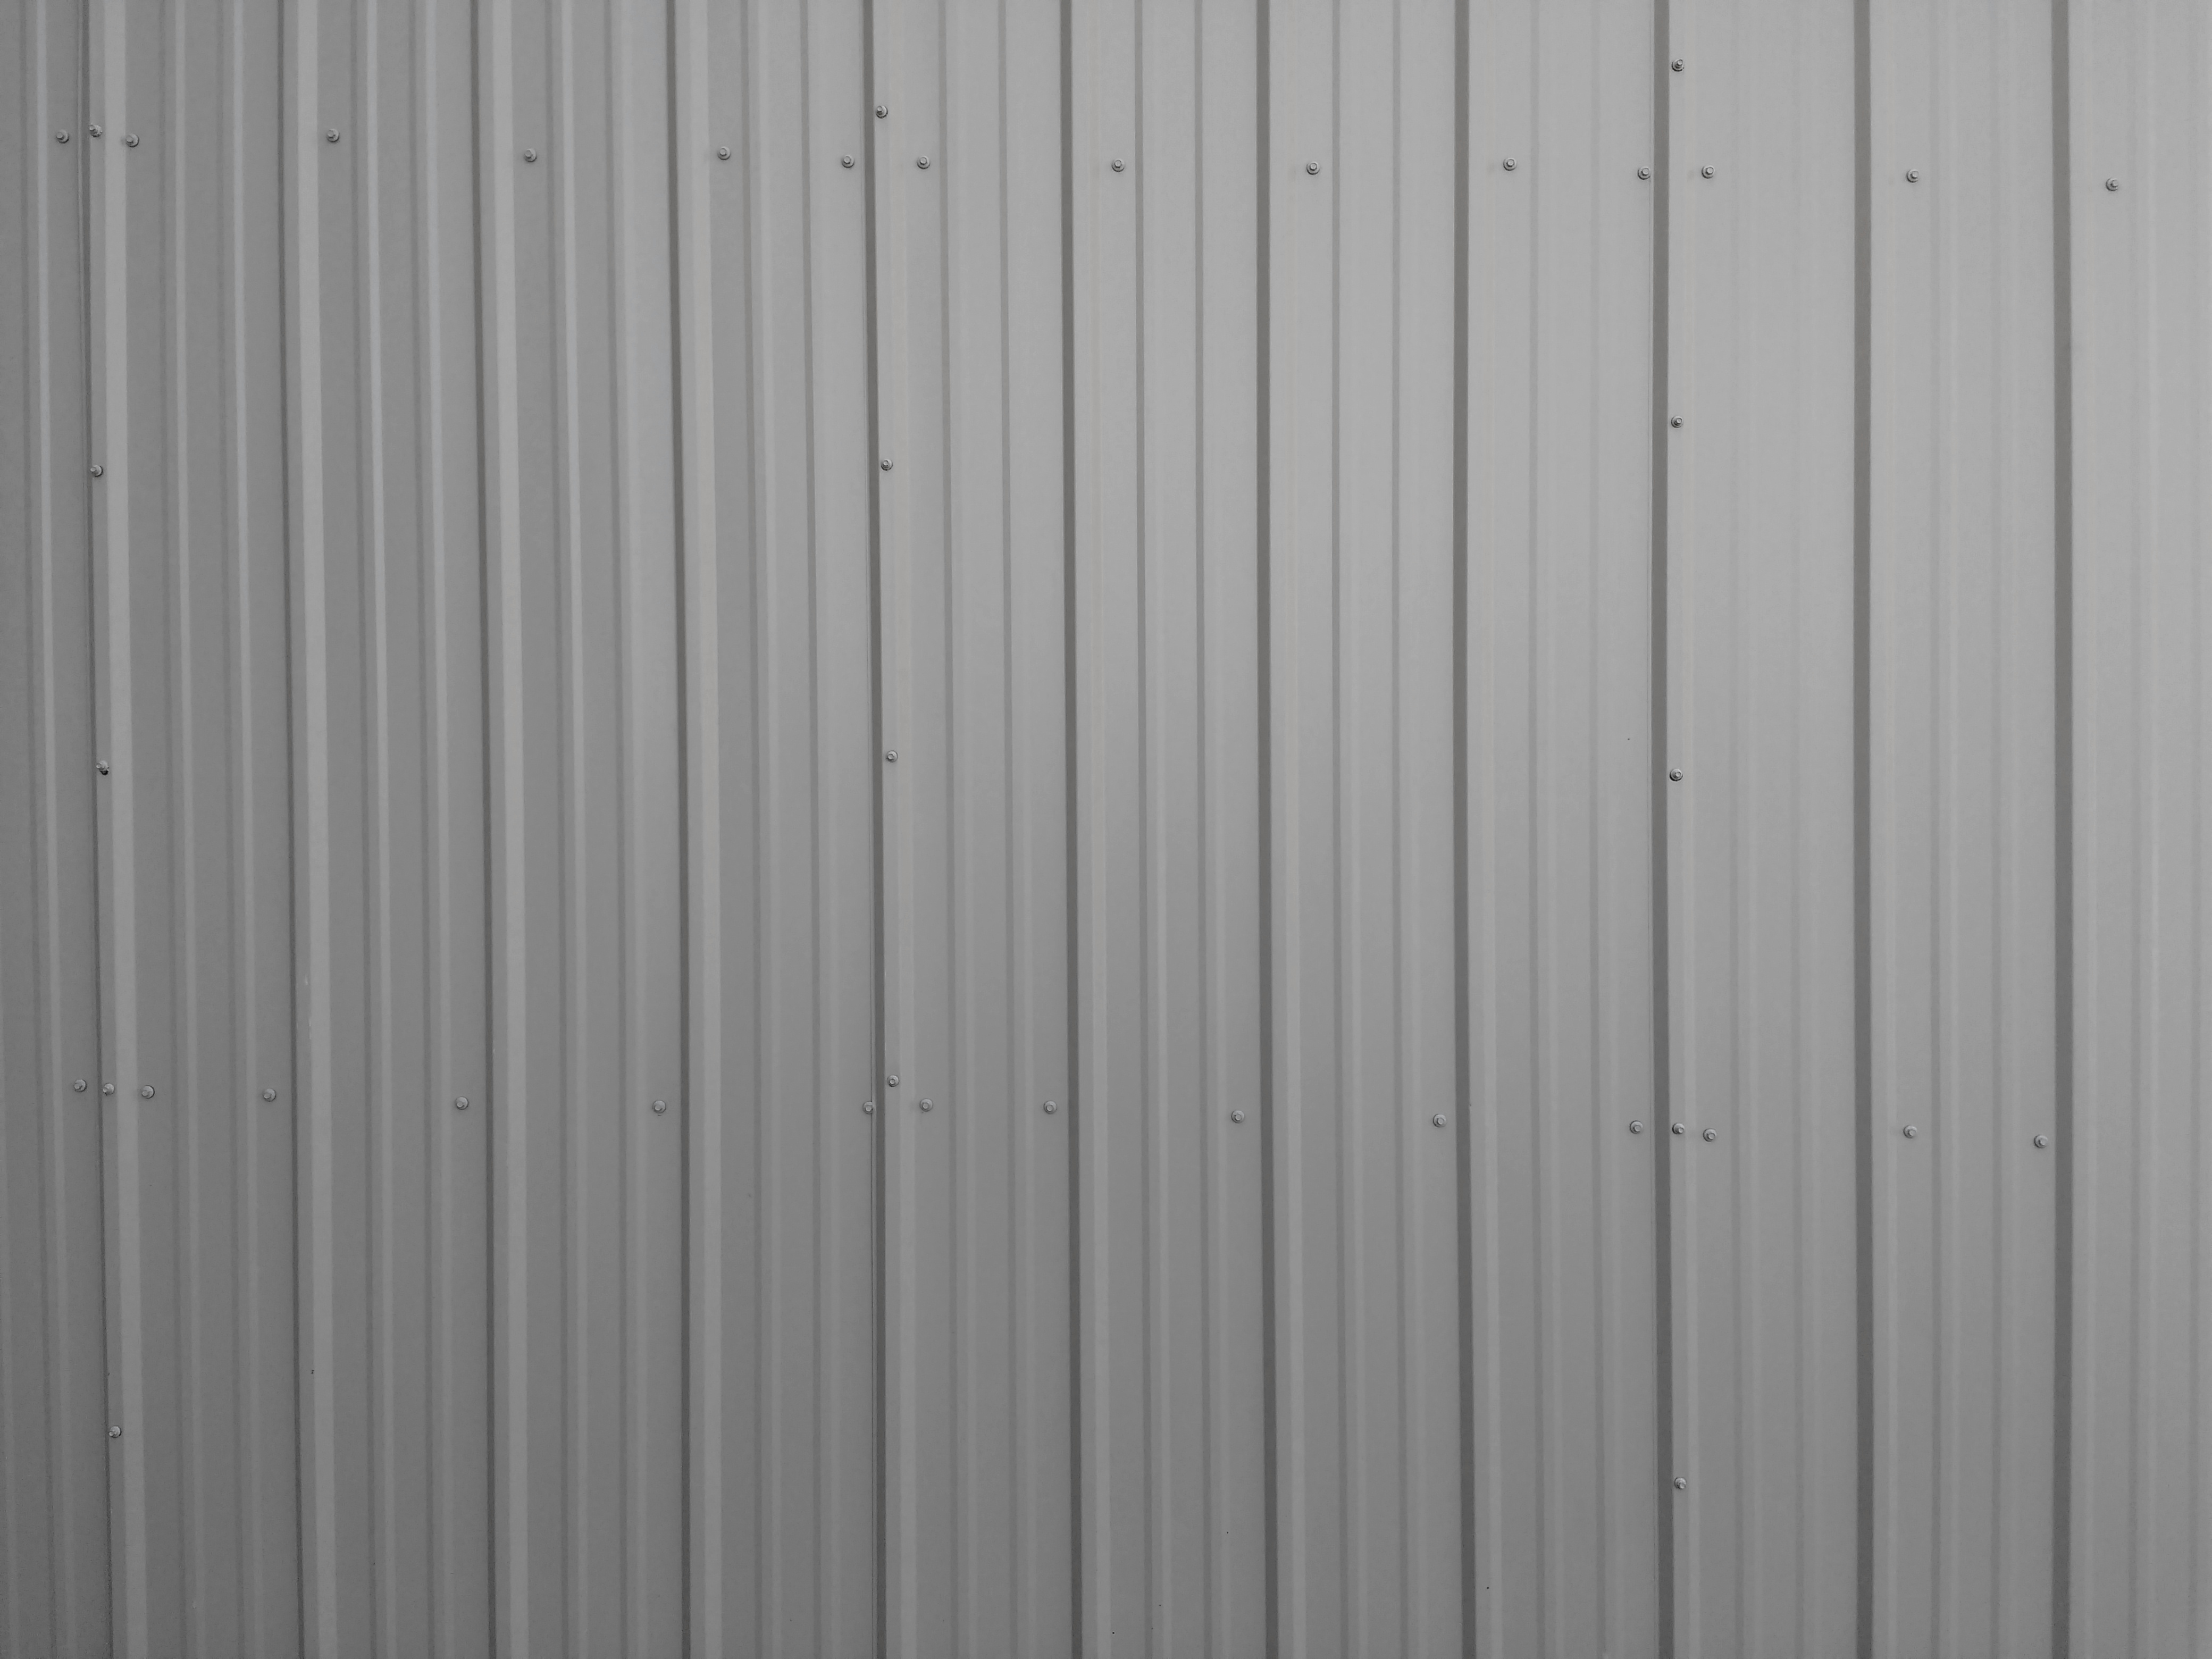 Ribbed Metal Siding Texture Gray Picture Free Photograph